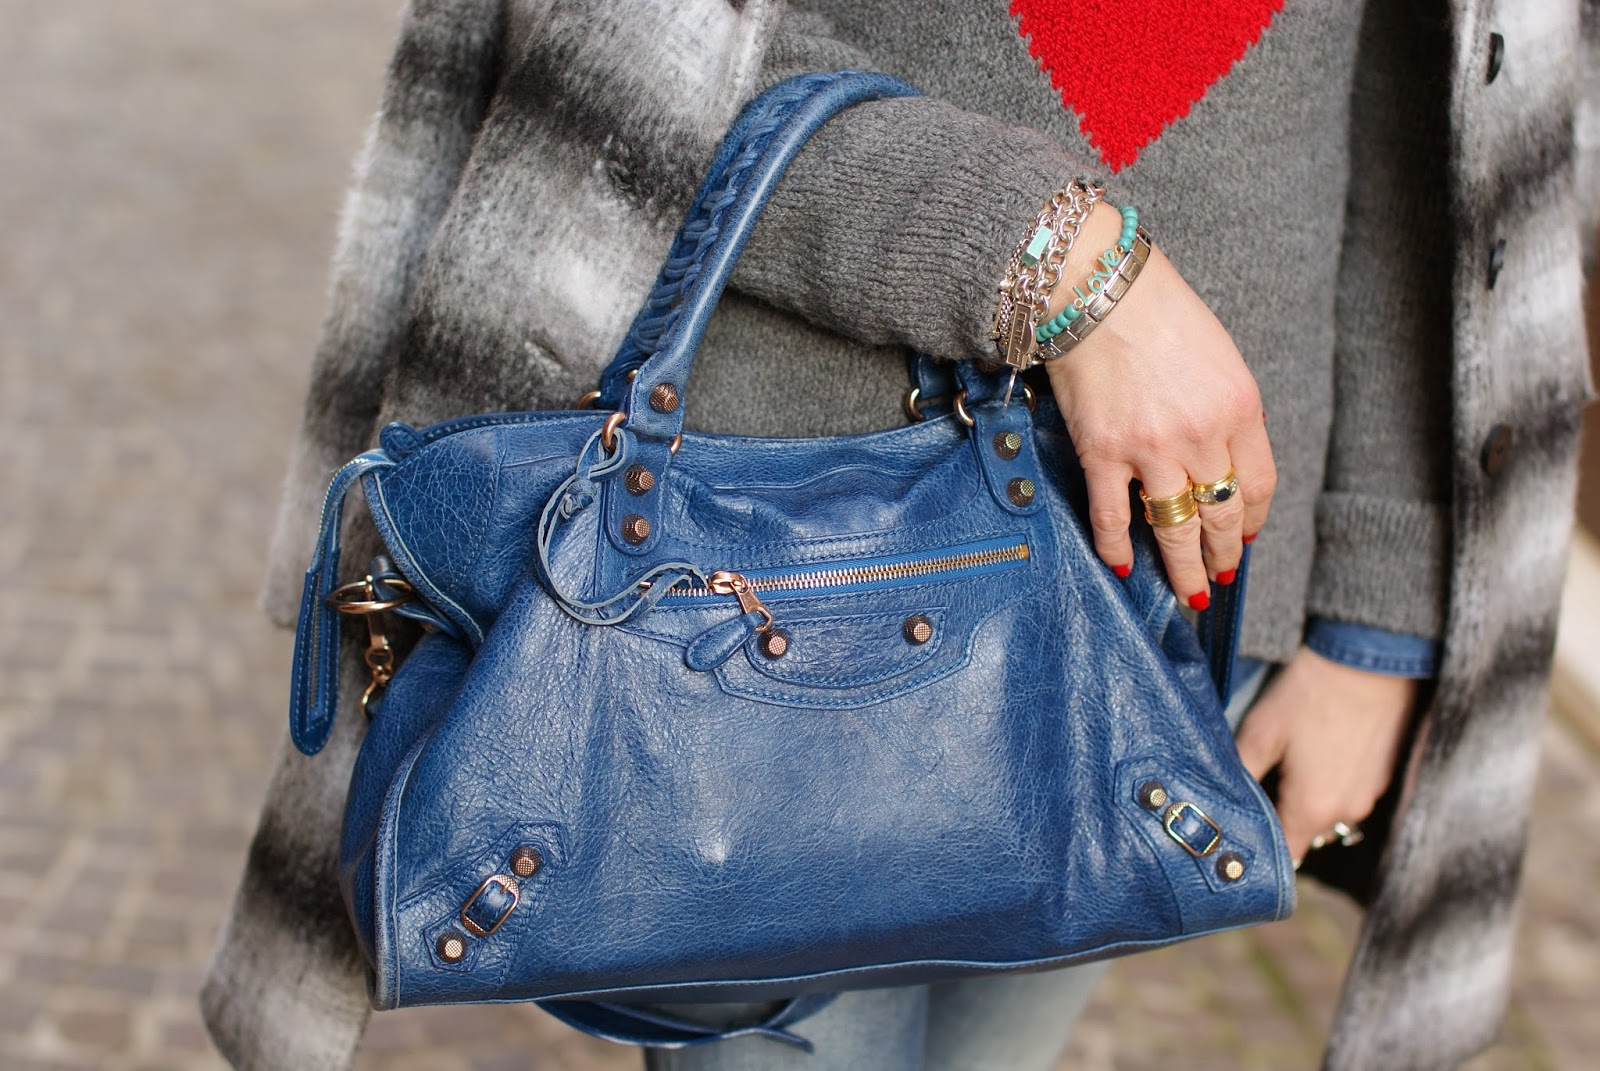 Balenciaga City cobalt blue, BVLGARI ring, Fashion and Cookies, fashion blogger